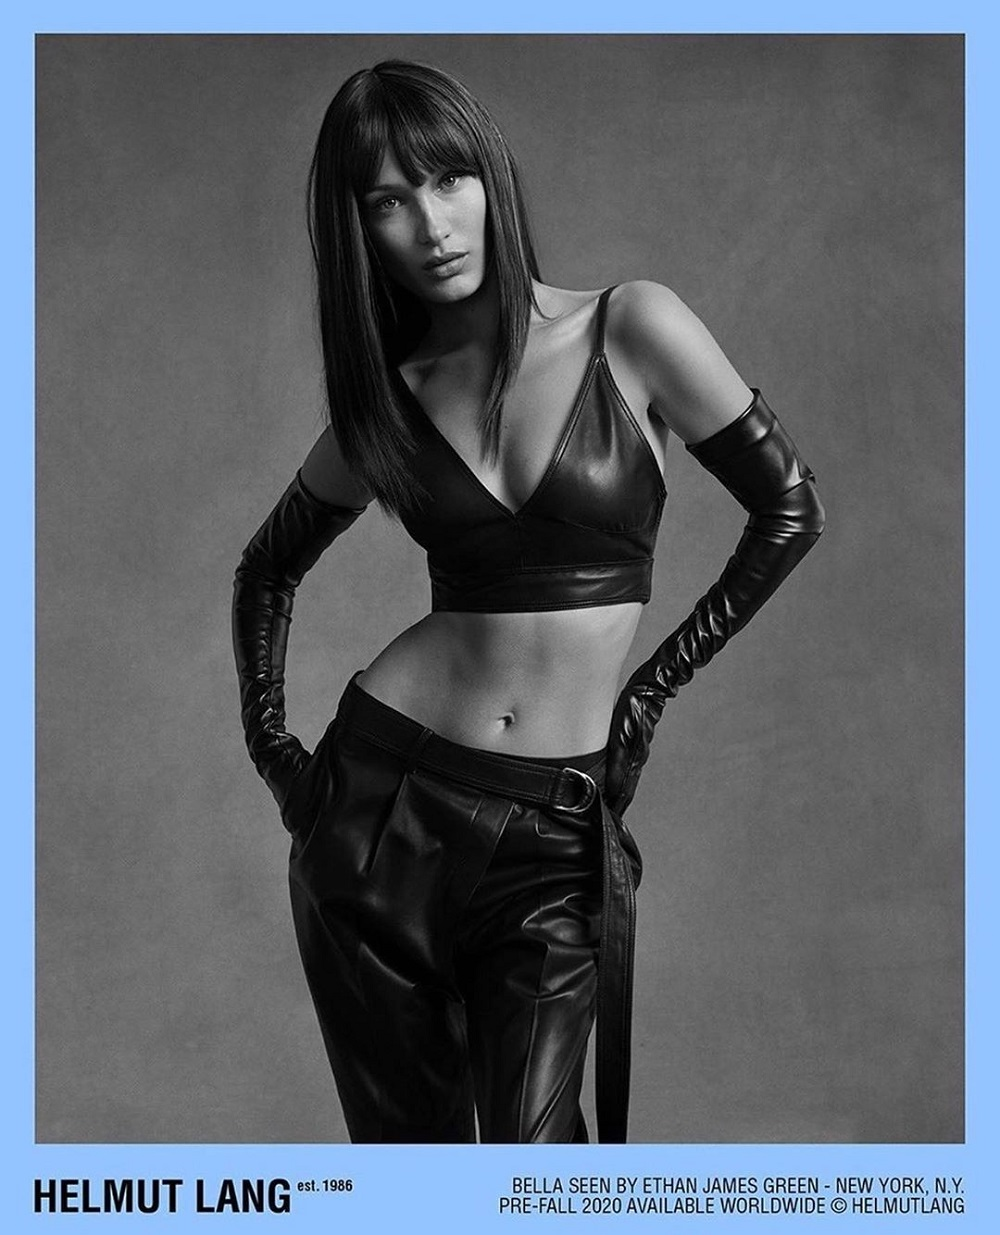 Helmut Lang Pre-Fall 2020 Campaign